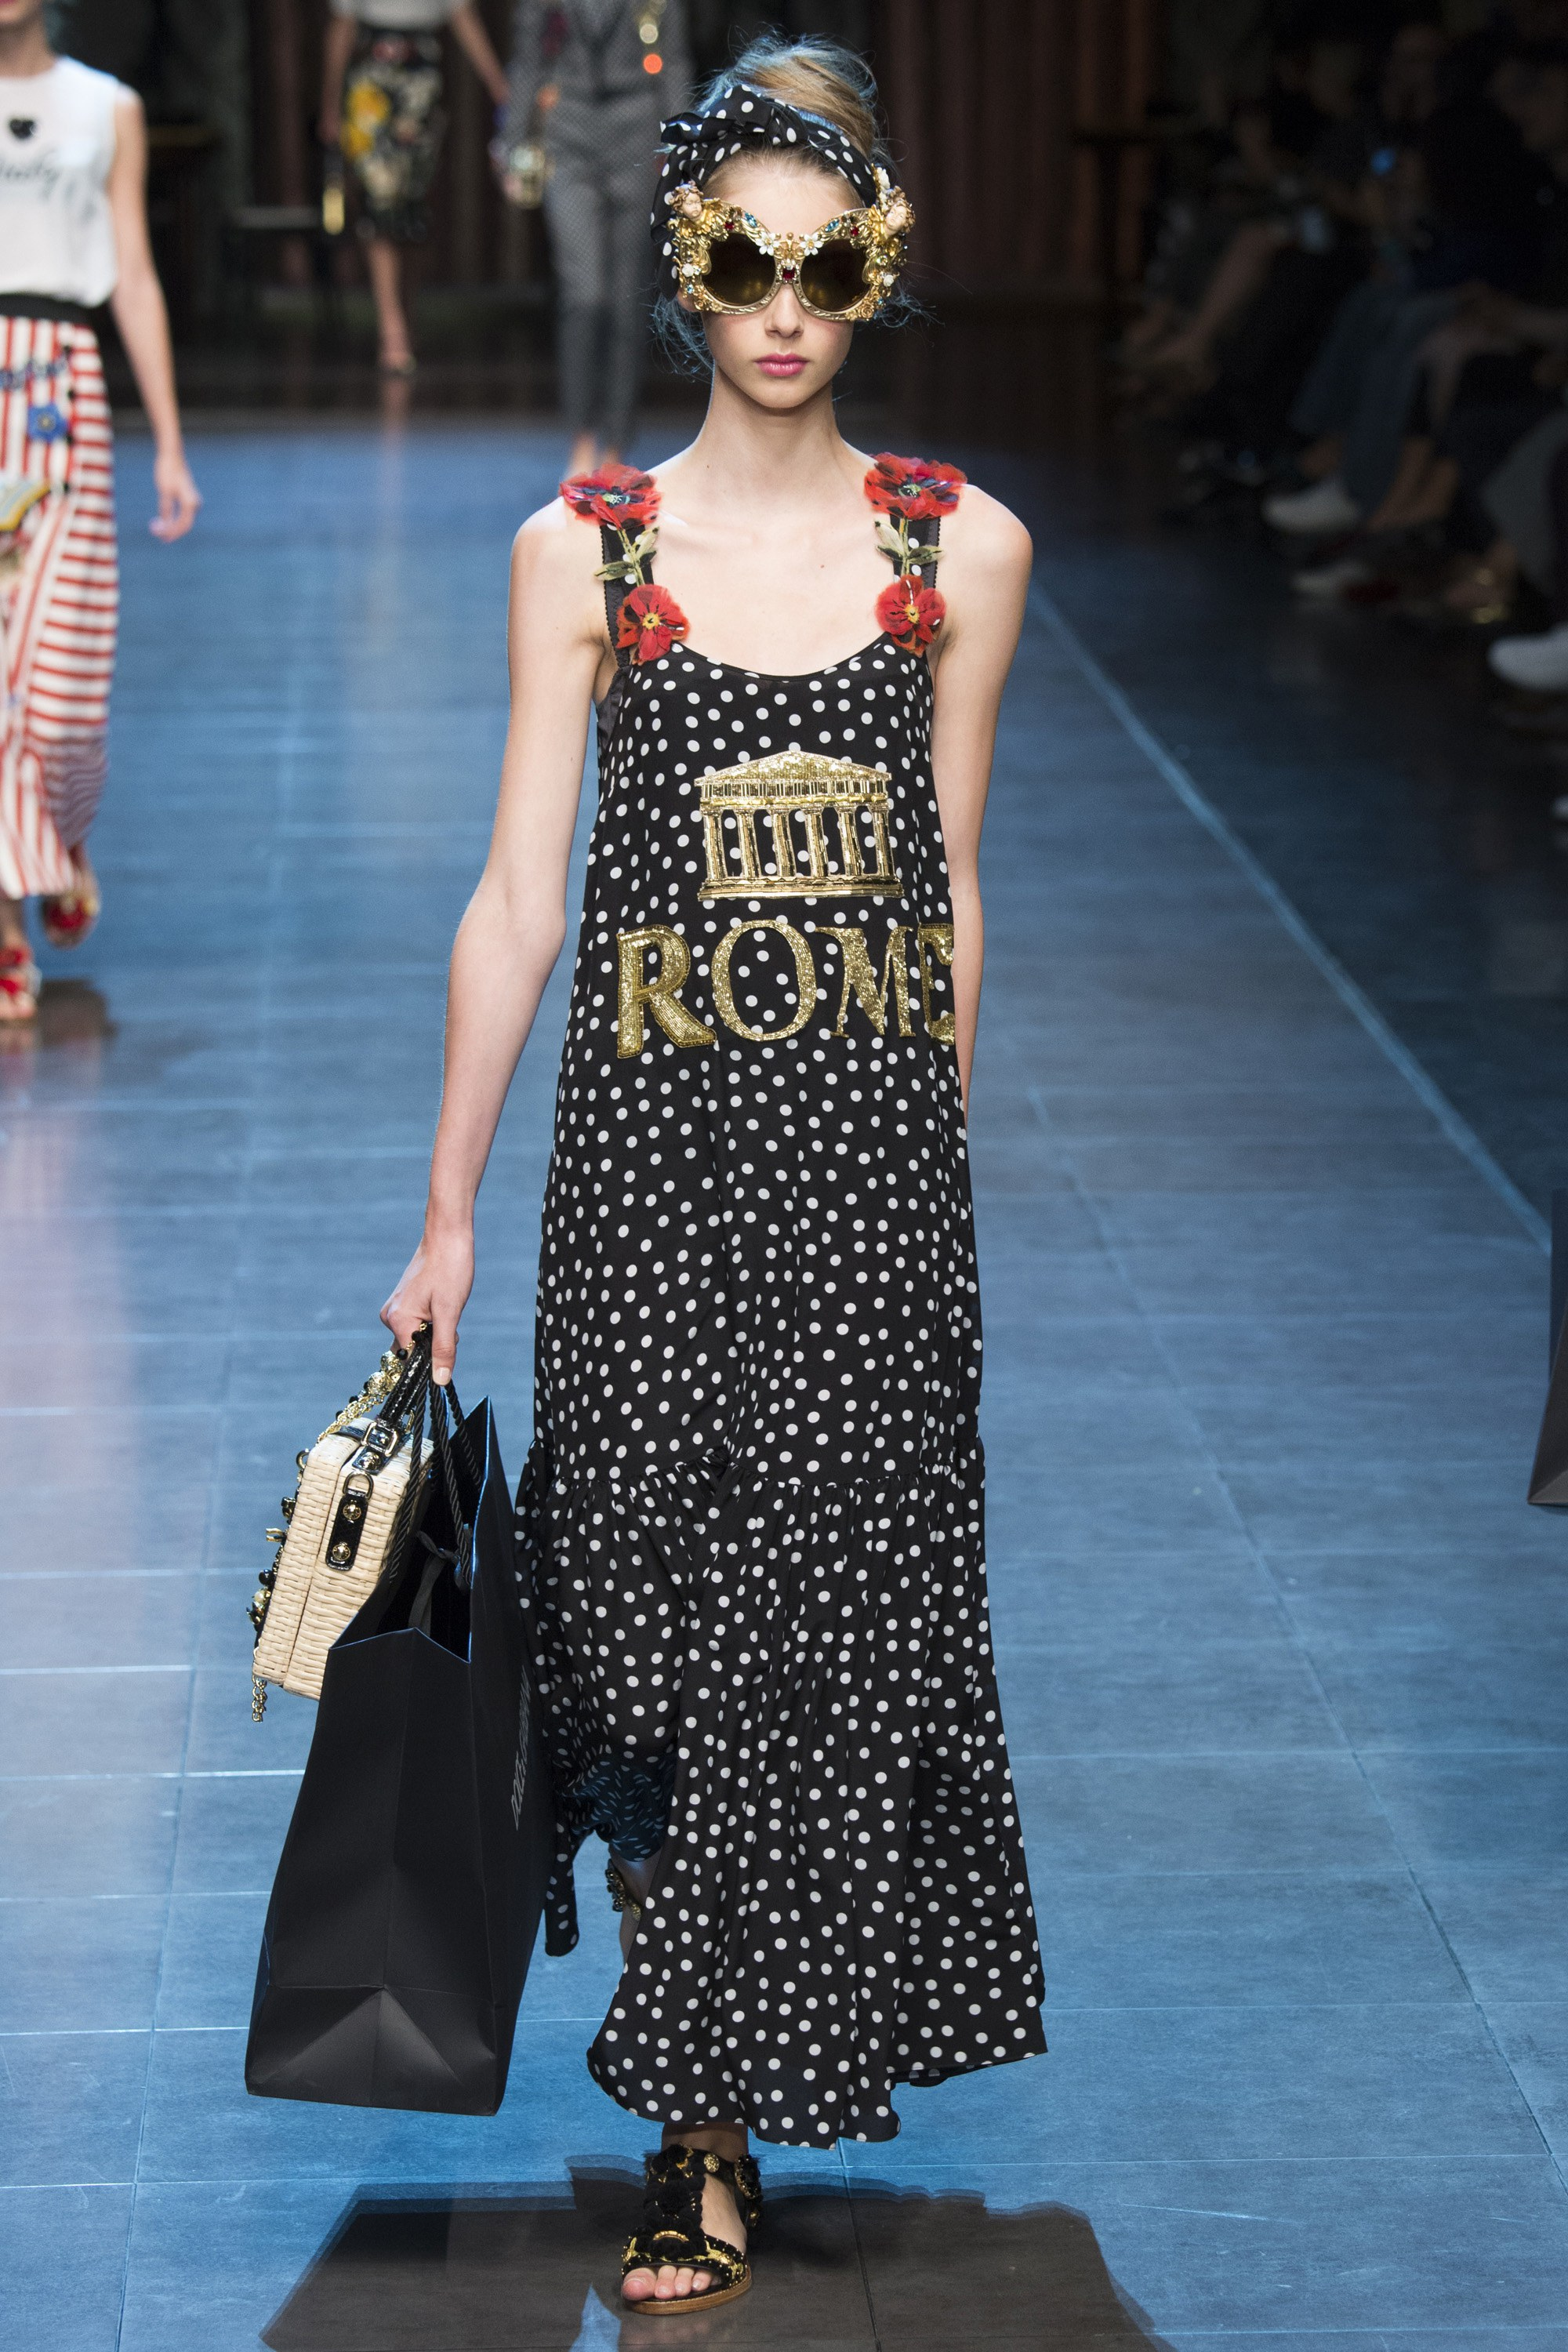 Milan-Fashion-Week-Dolce-Gabbana-21